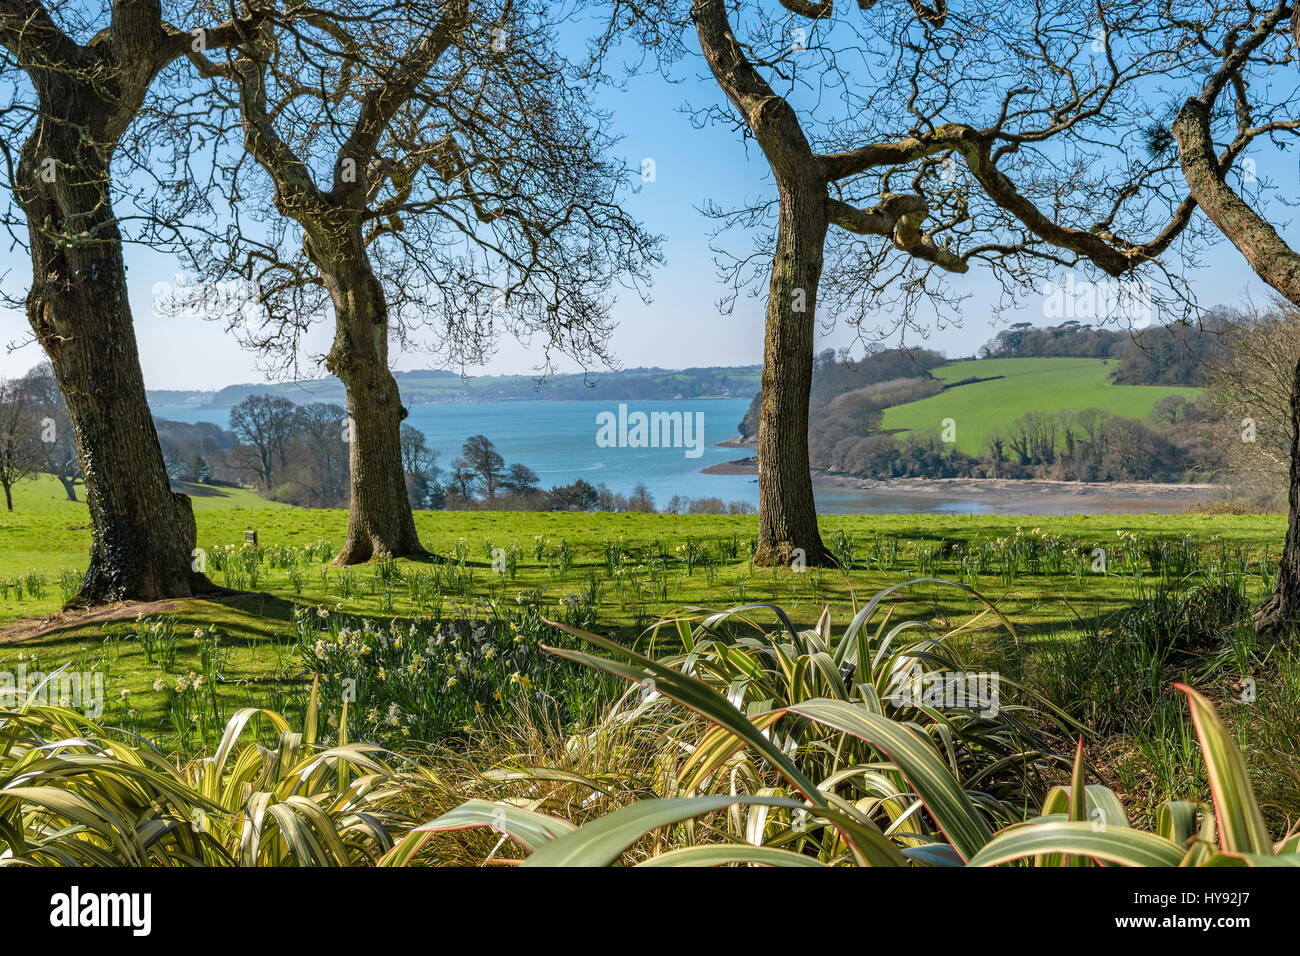 A view over the carrick roads on the river fal in cornwall, england, uk - Stock Image